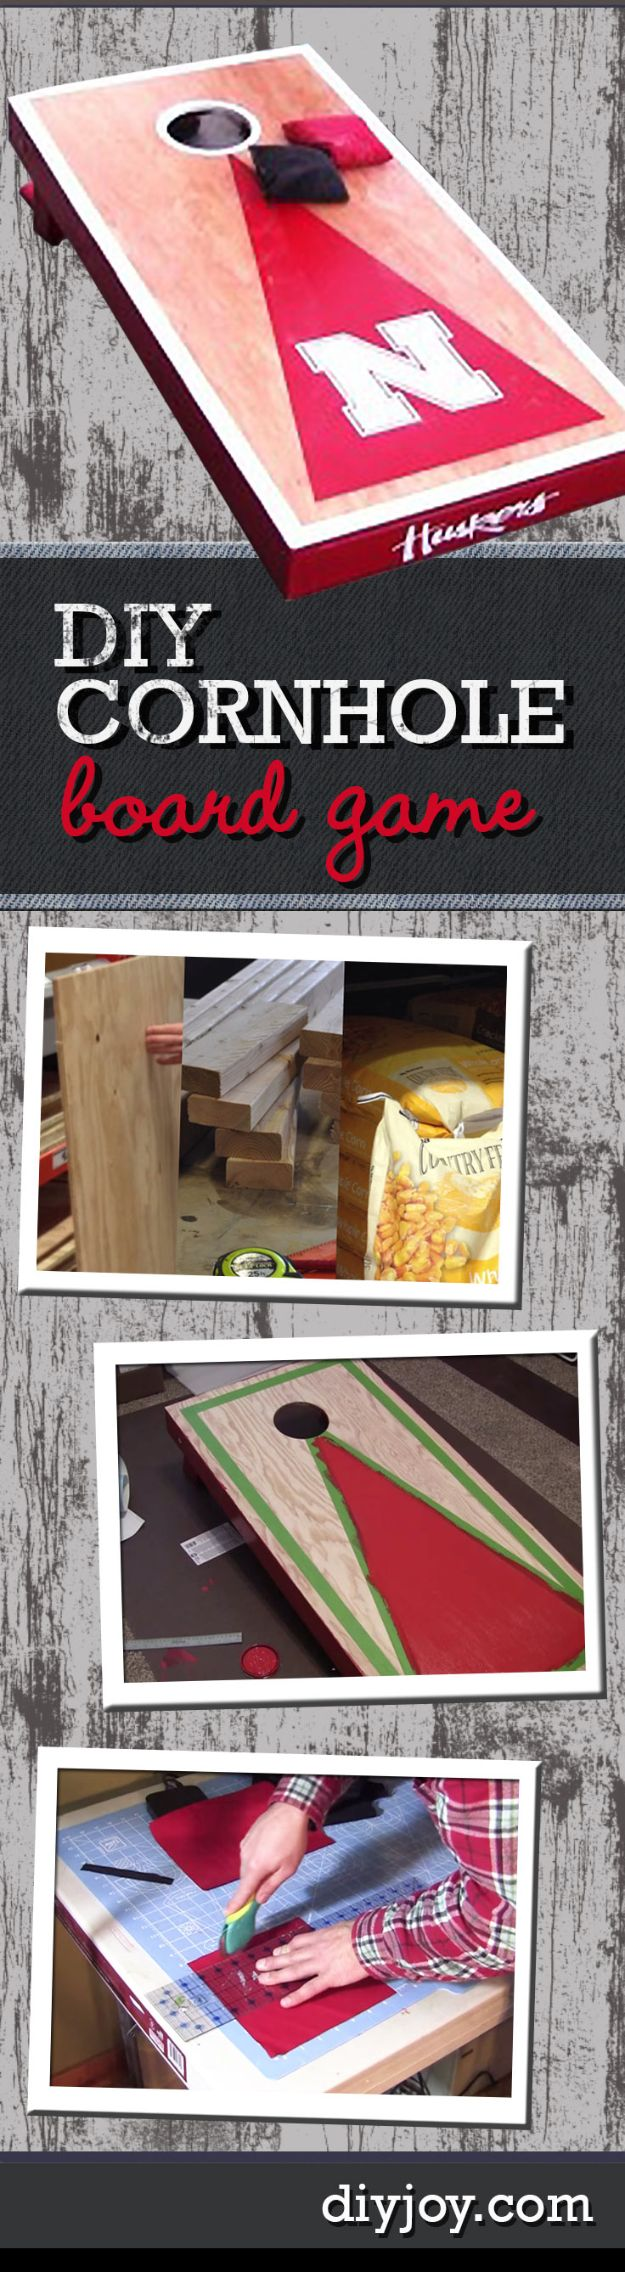 DIY Gifts for Him - Cornhole Boards - Homemade Gift Ideas for Guys - DYI Christmas Gift for Dad, Boyfriend, Husband Brother - Easy and Cheap Handmade Presents Birthday #diy #gifts #diygifts #mensgifts